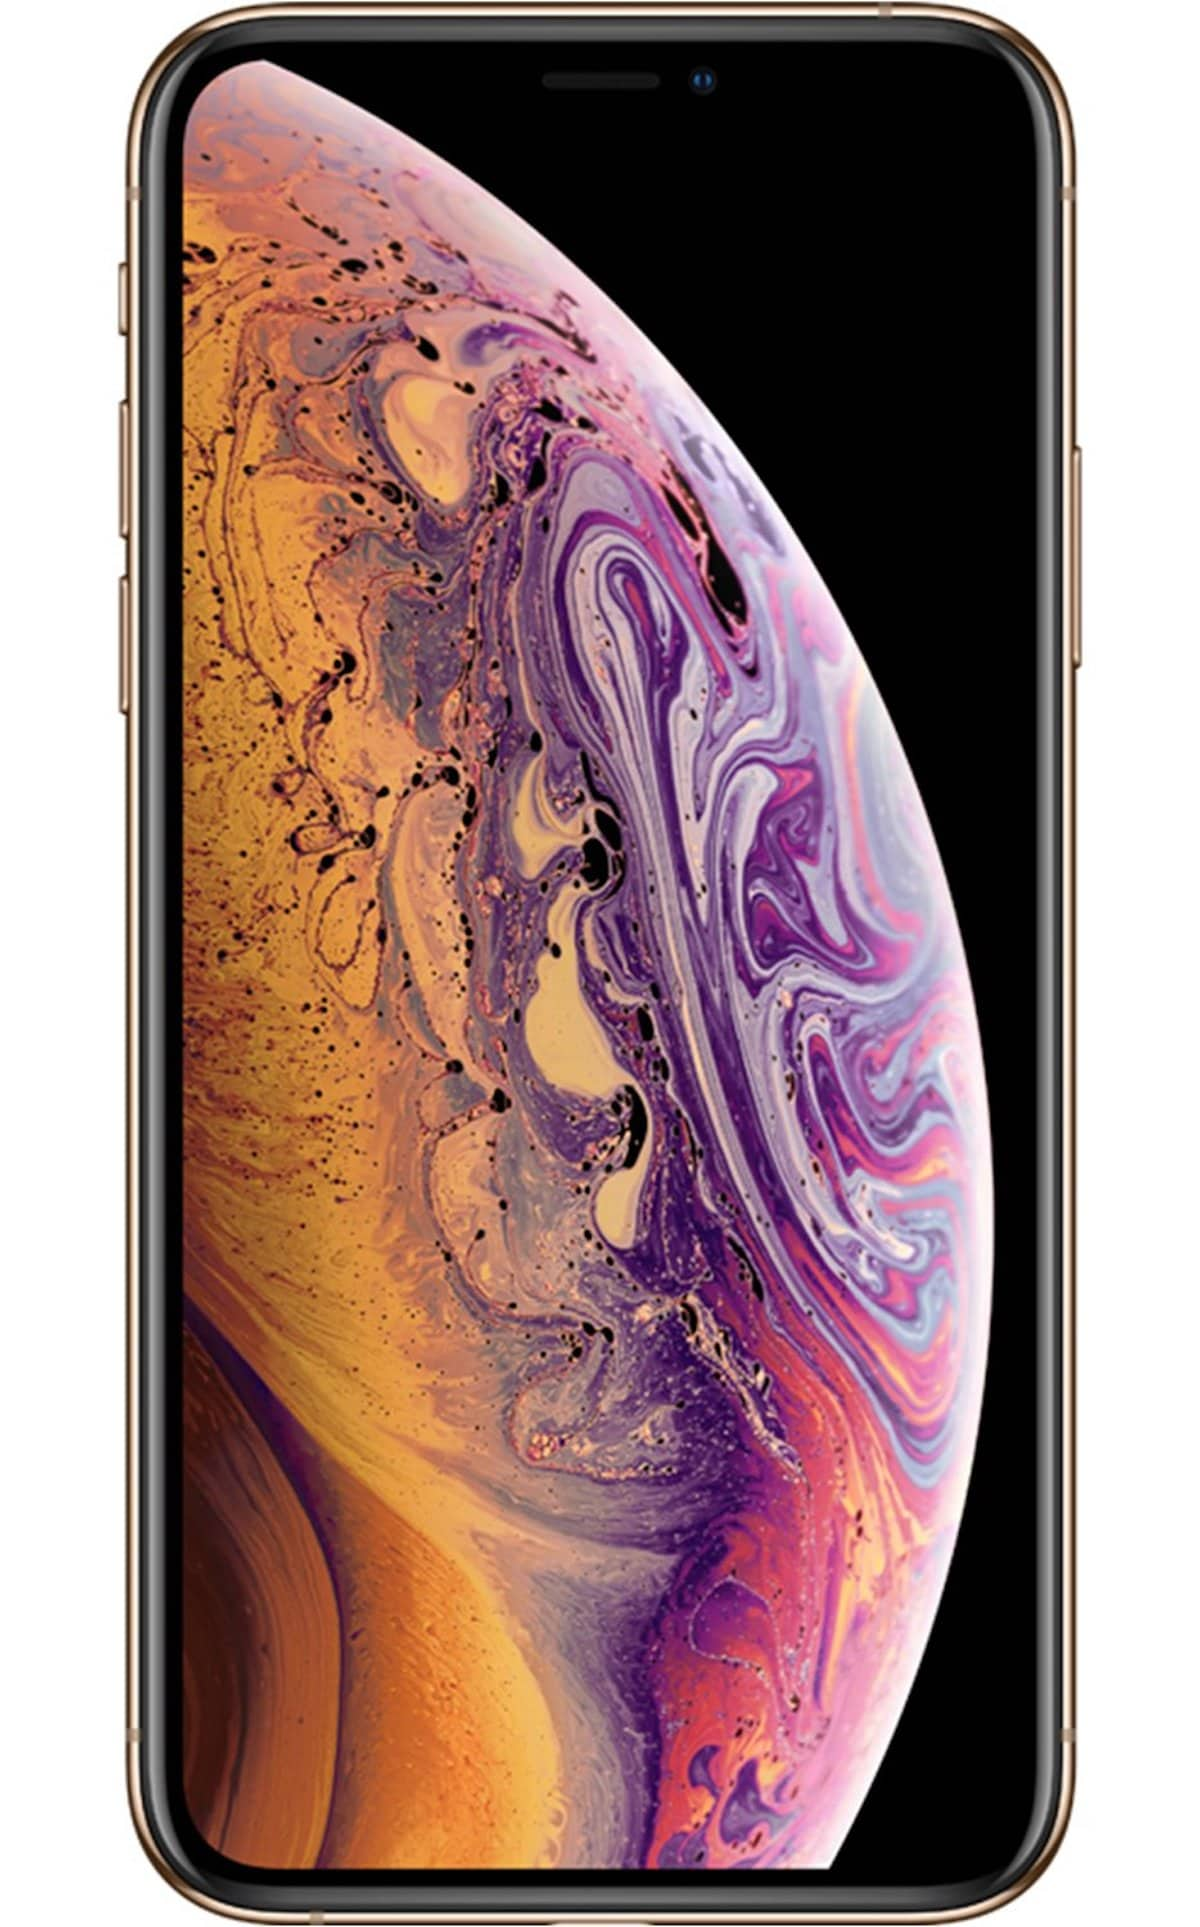 Come vincere un iPhone XS gratis camminando